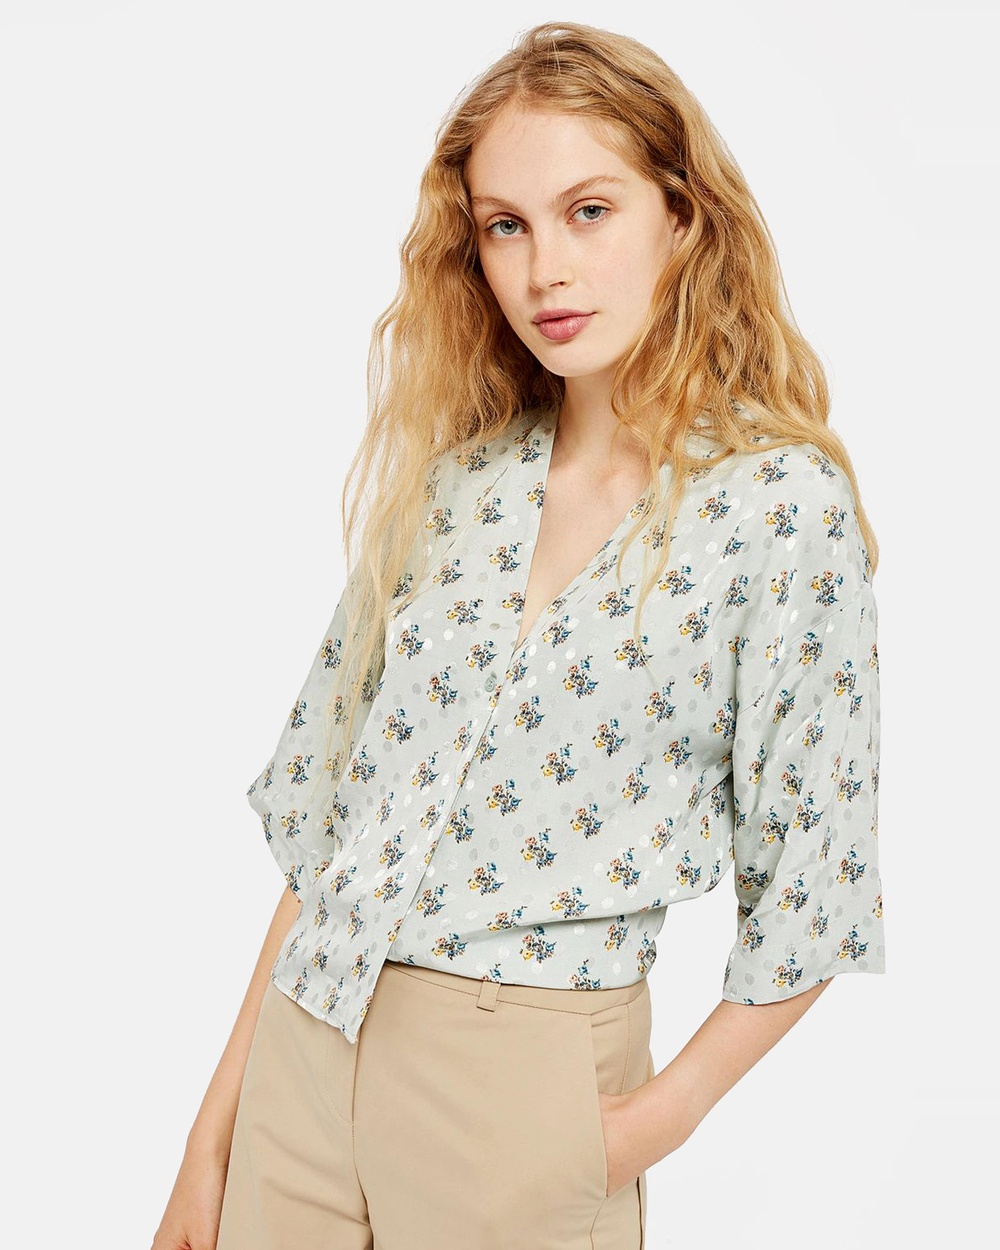 TOPSHOP Tilly Tie Sleeve Blouse Tops Light Green Tilly Tie Sleeve Blouse